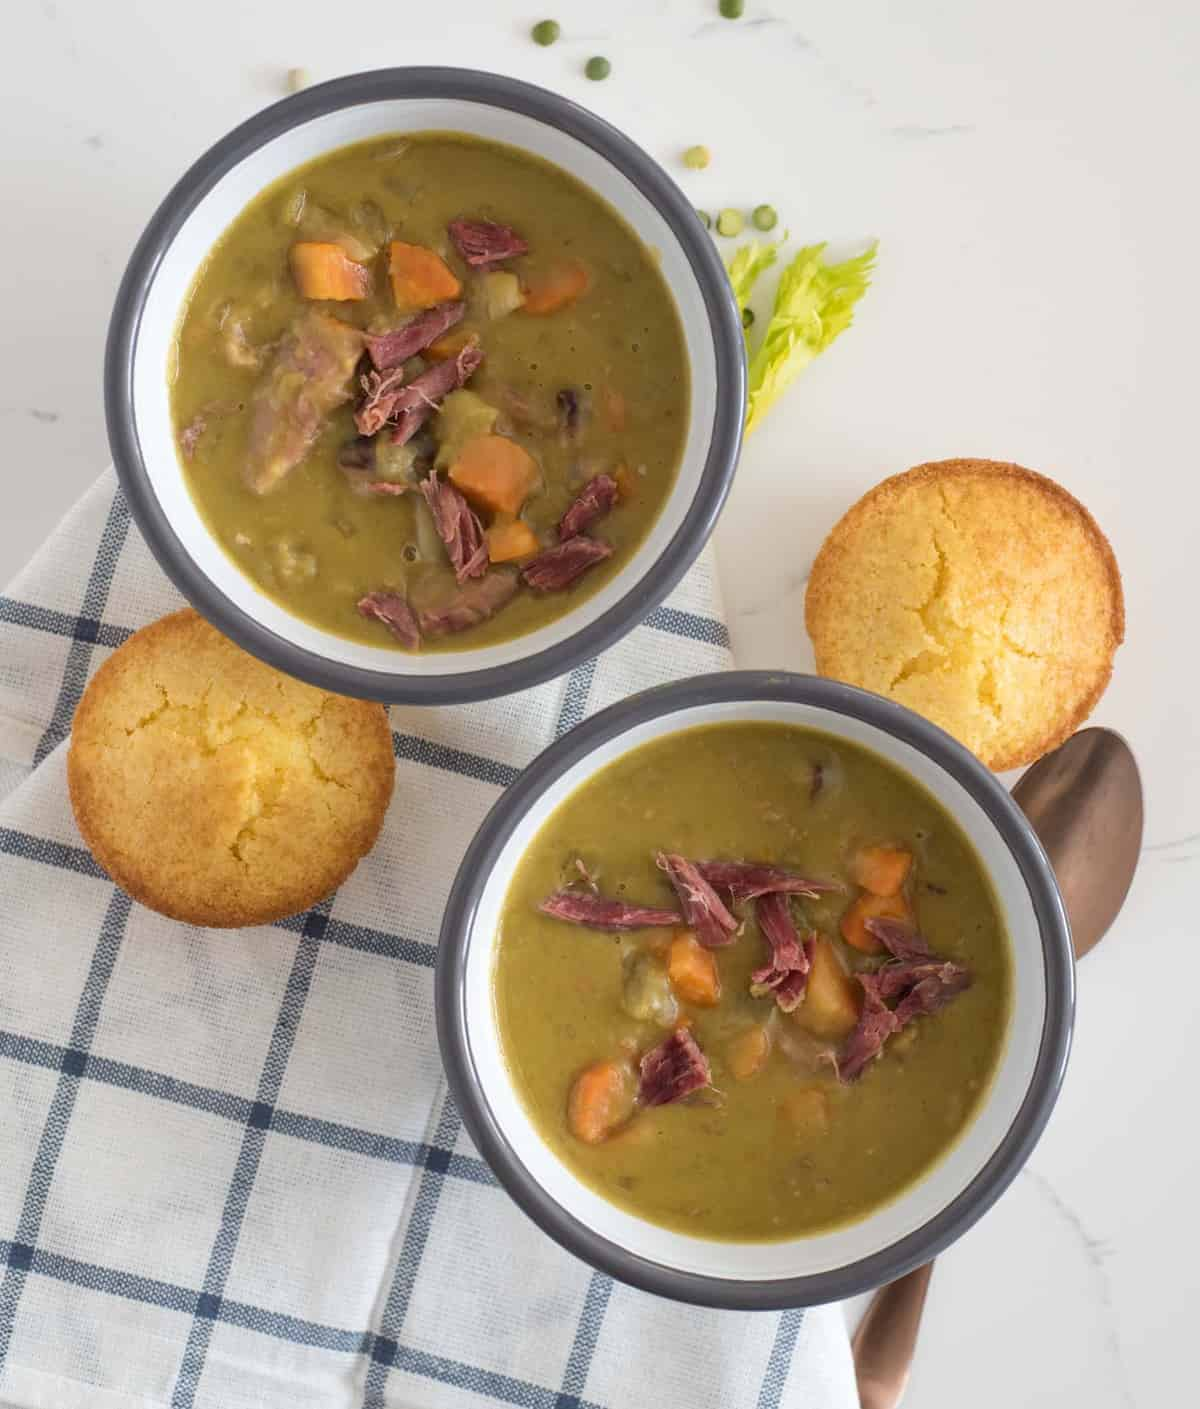 Quick and easy Instant Pot Split Pea Soup made with just a few ingredients and done in about 4o minutes start to finish.